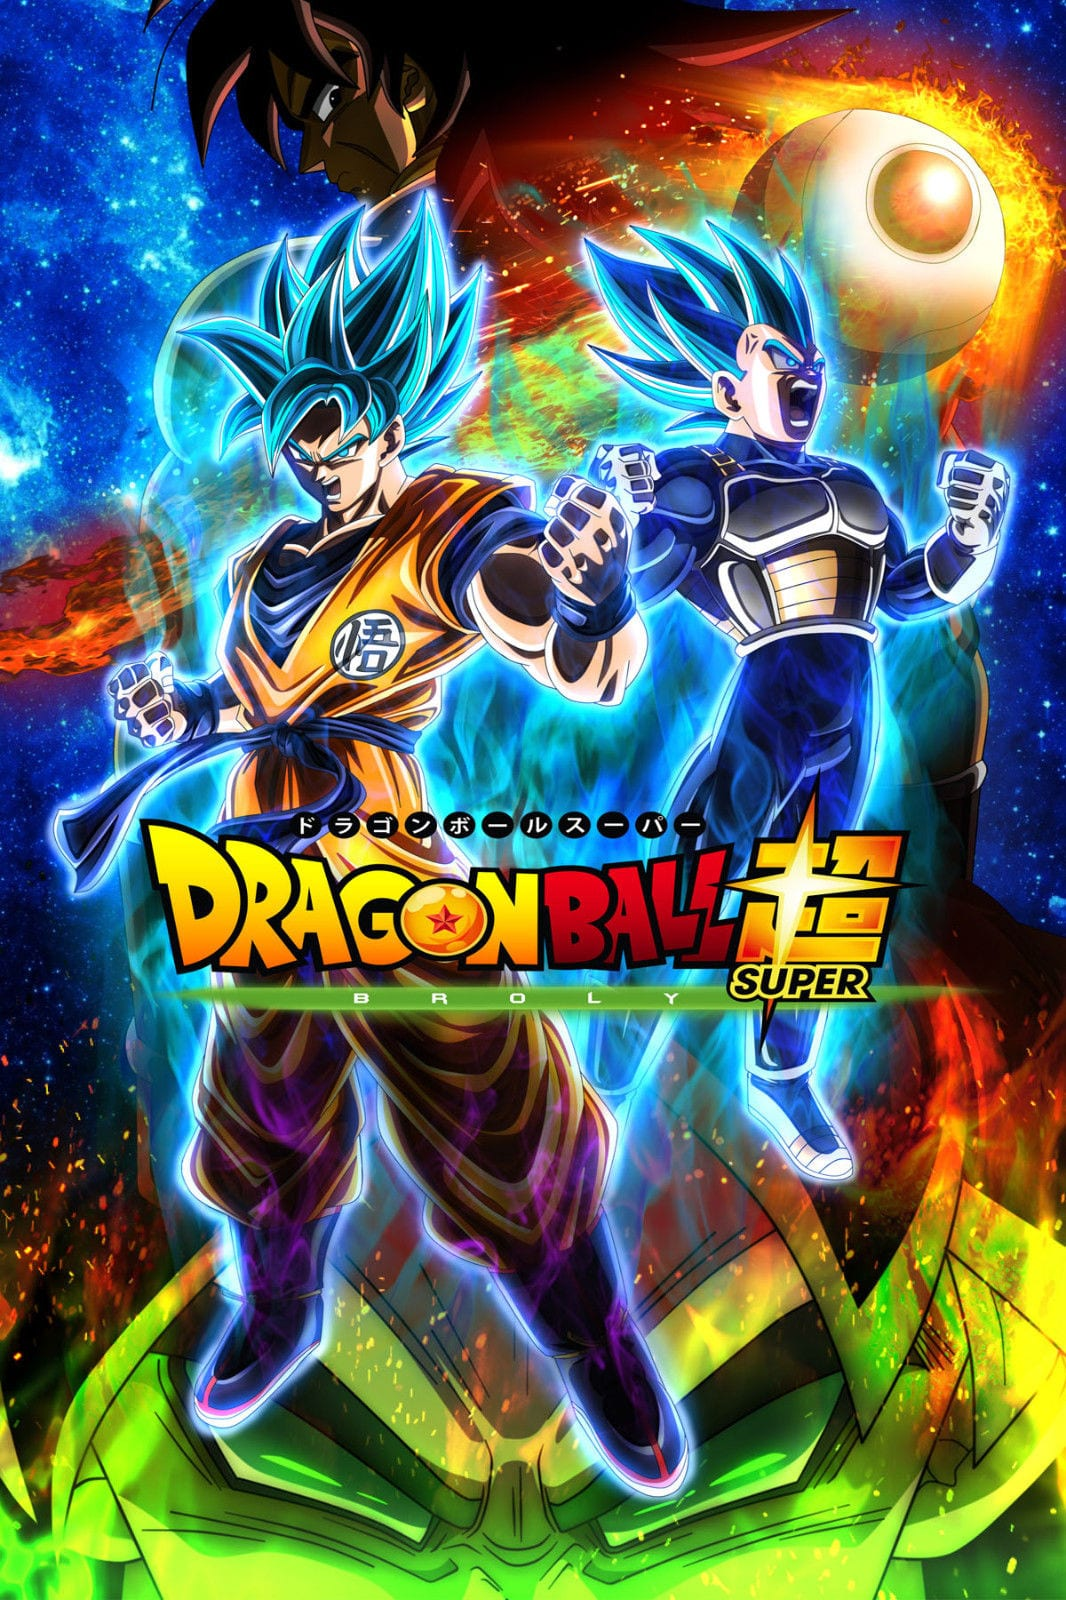 Película Dragon Ball Super Broly